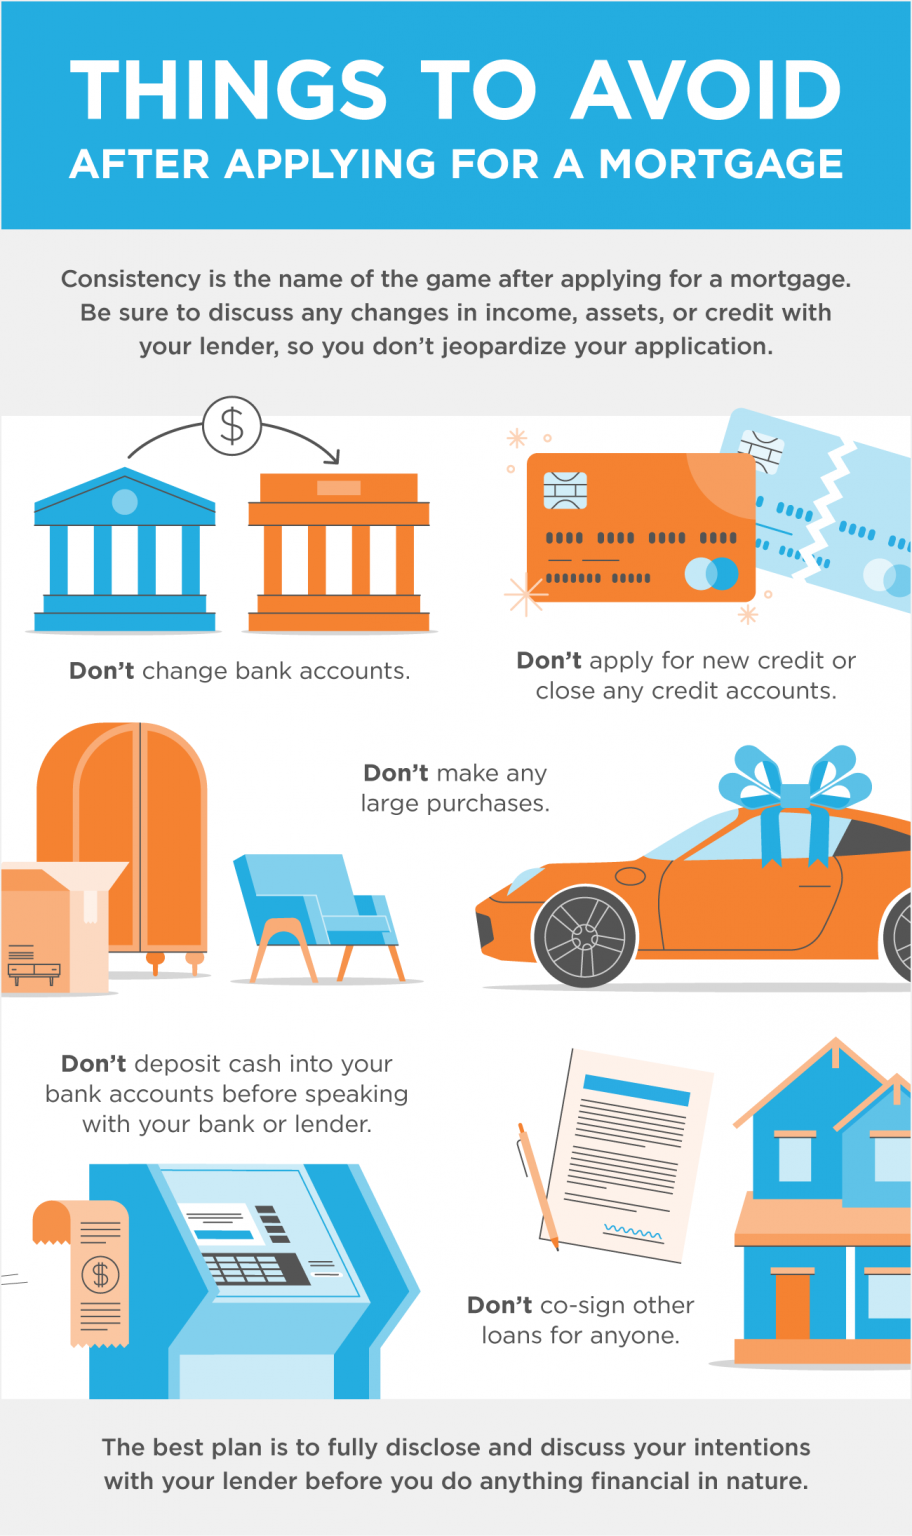 Things to Avoid after Applying for a Mortgage.png